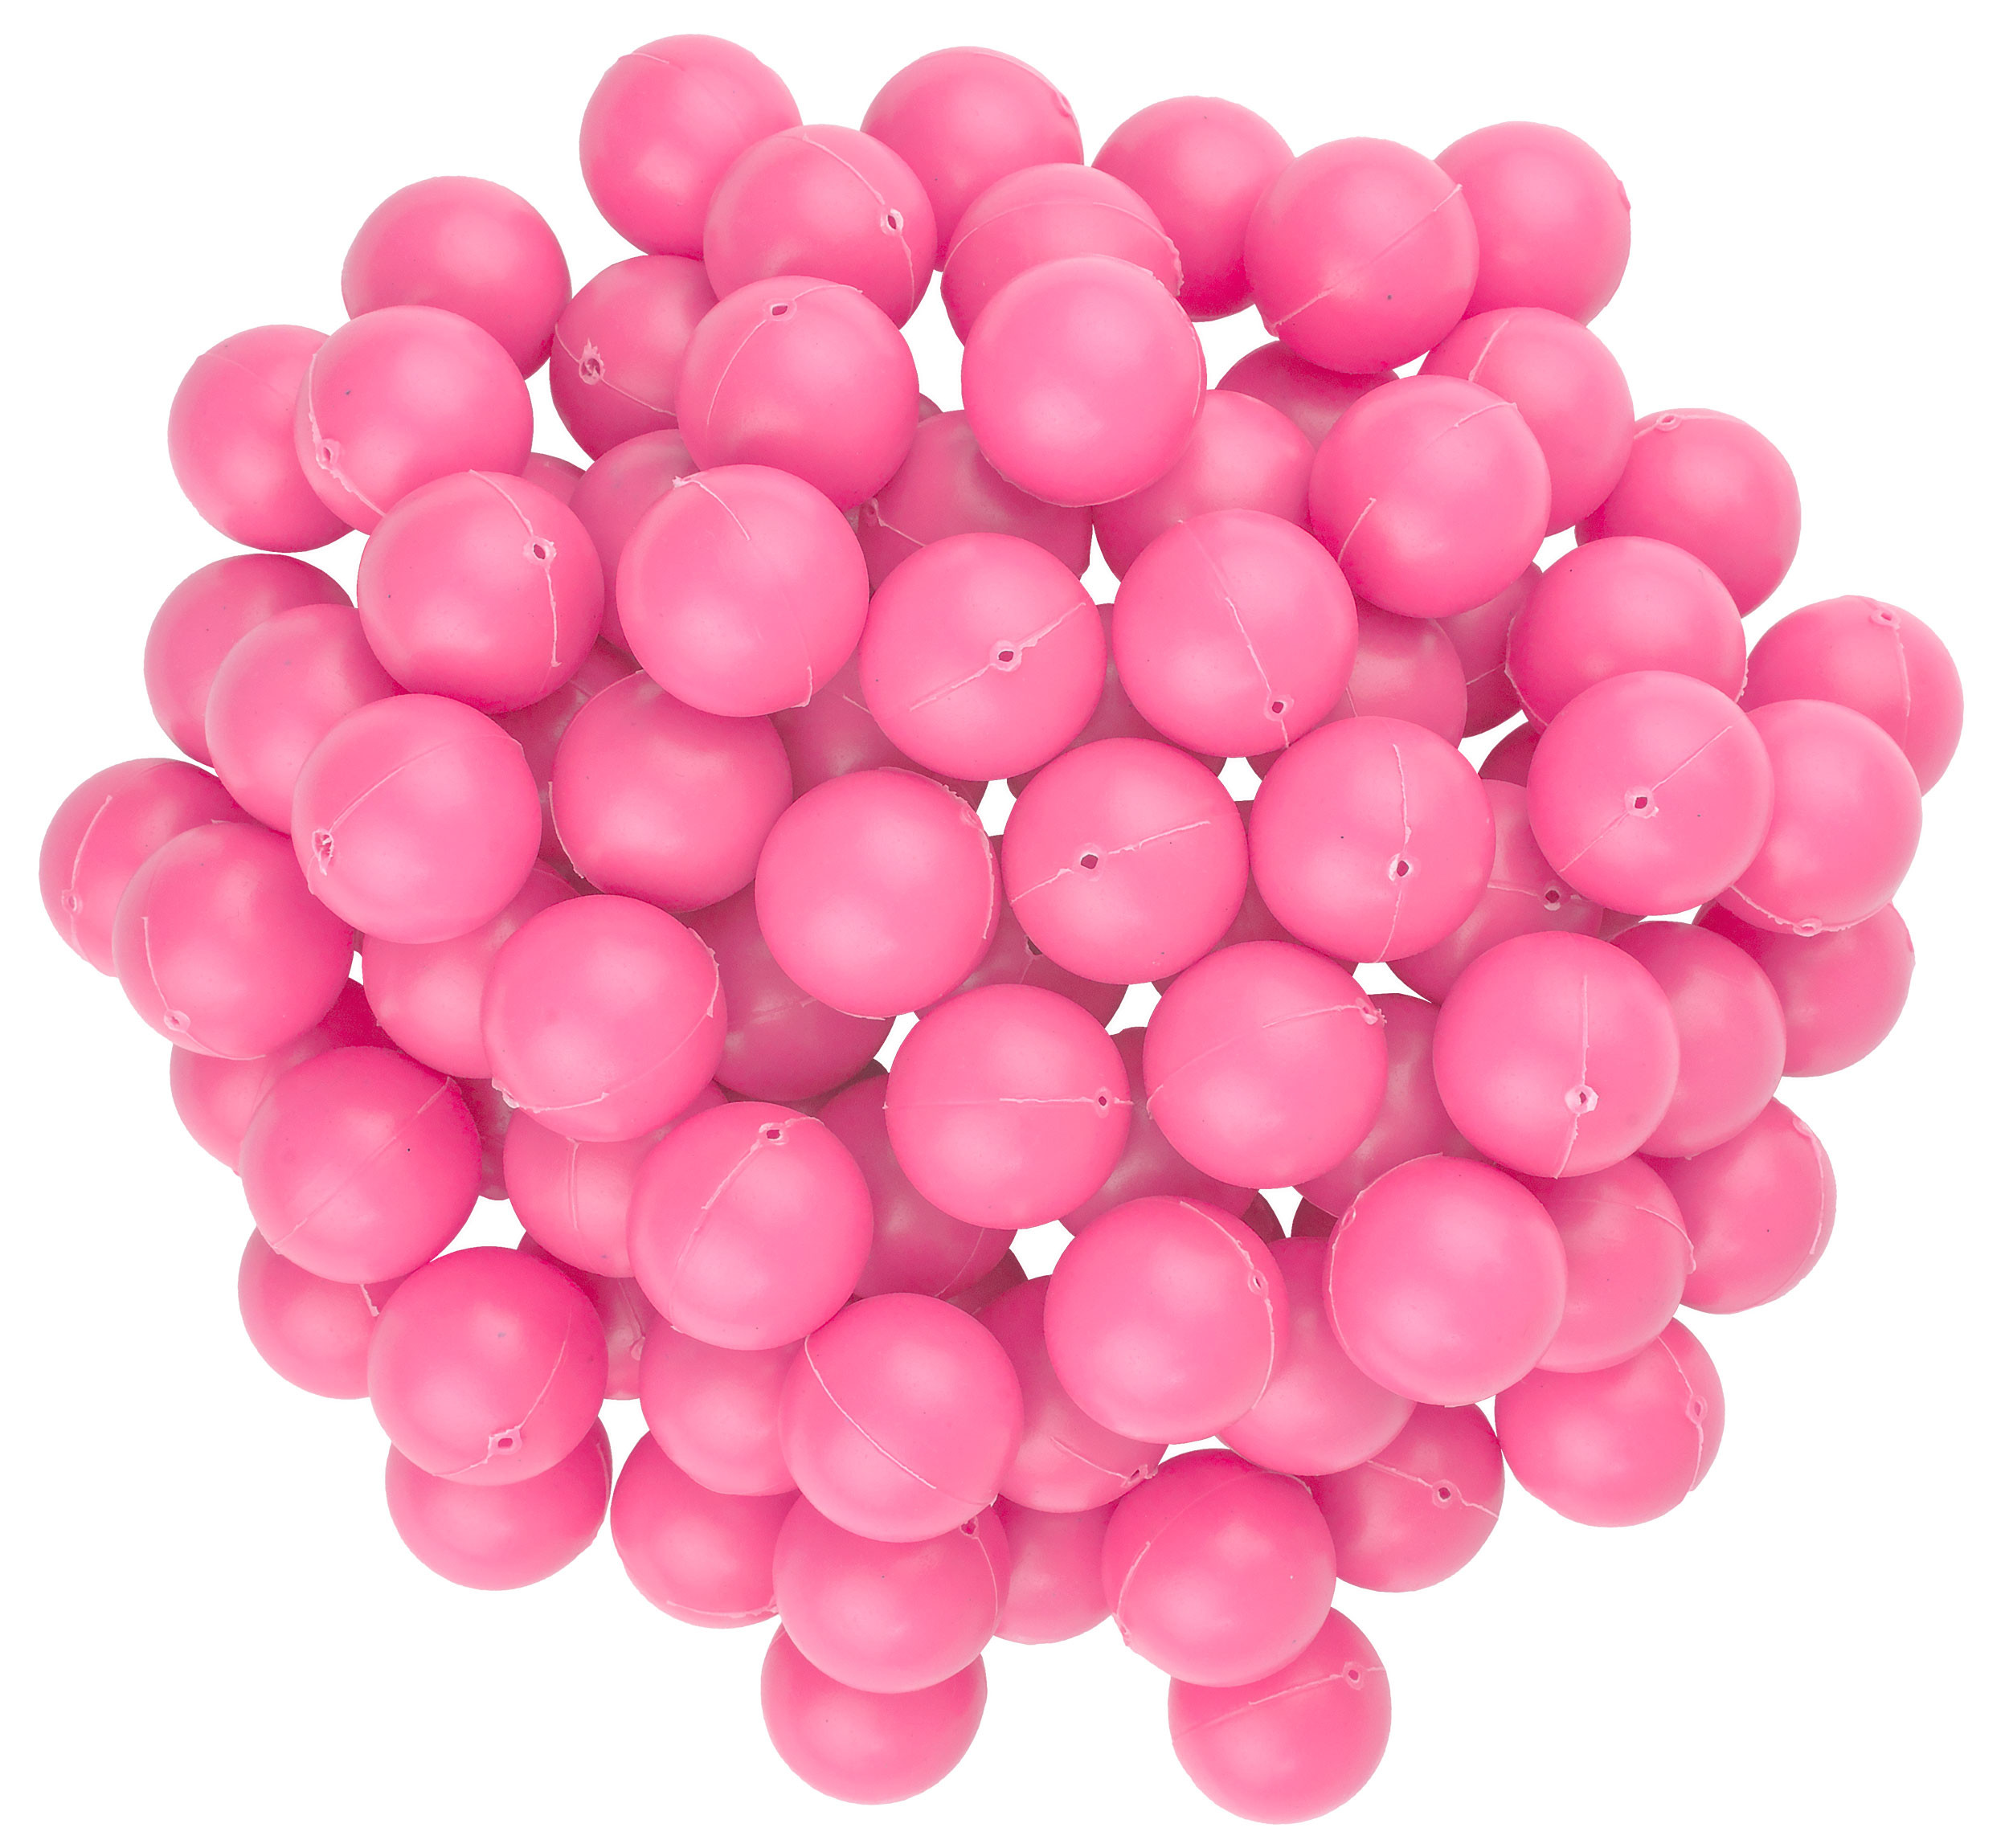 Pink Mini Beer Pong Balls